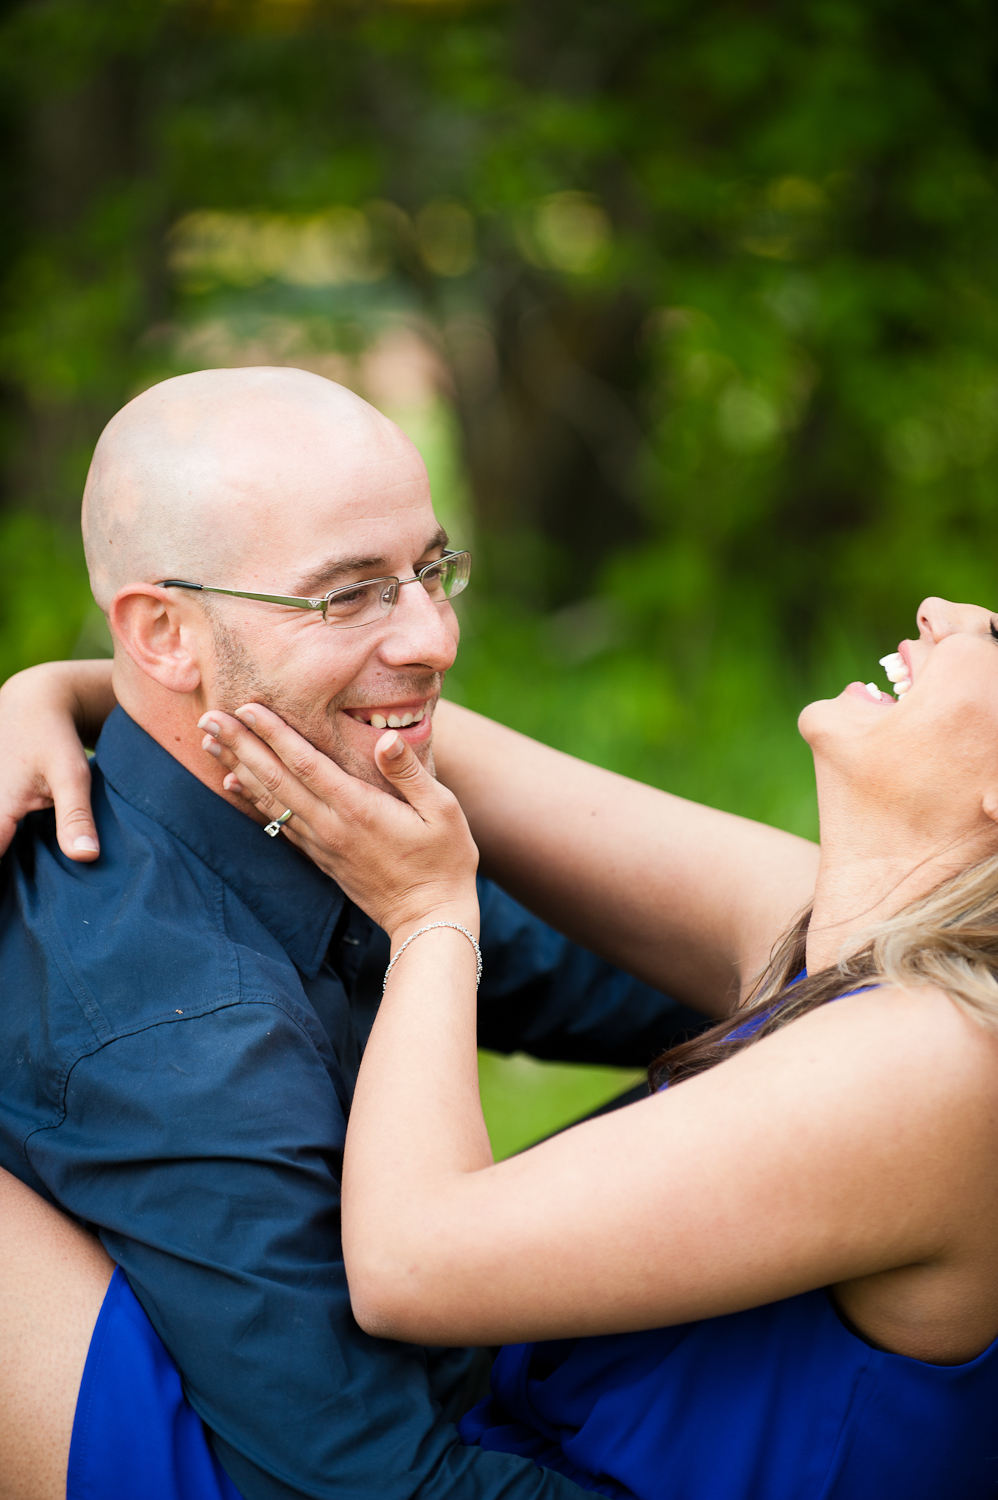 sean-williams-alberta-engagement-wedding-lifestyle-photography-edmonton-photographer-professional-34.jpg